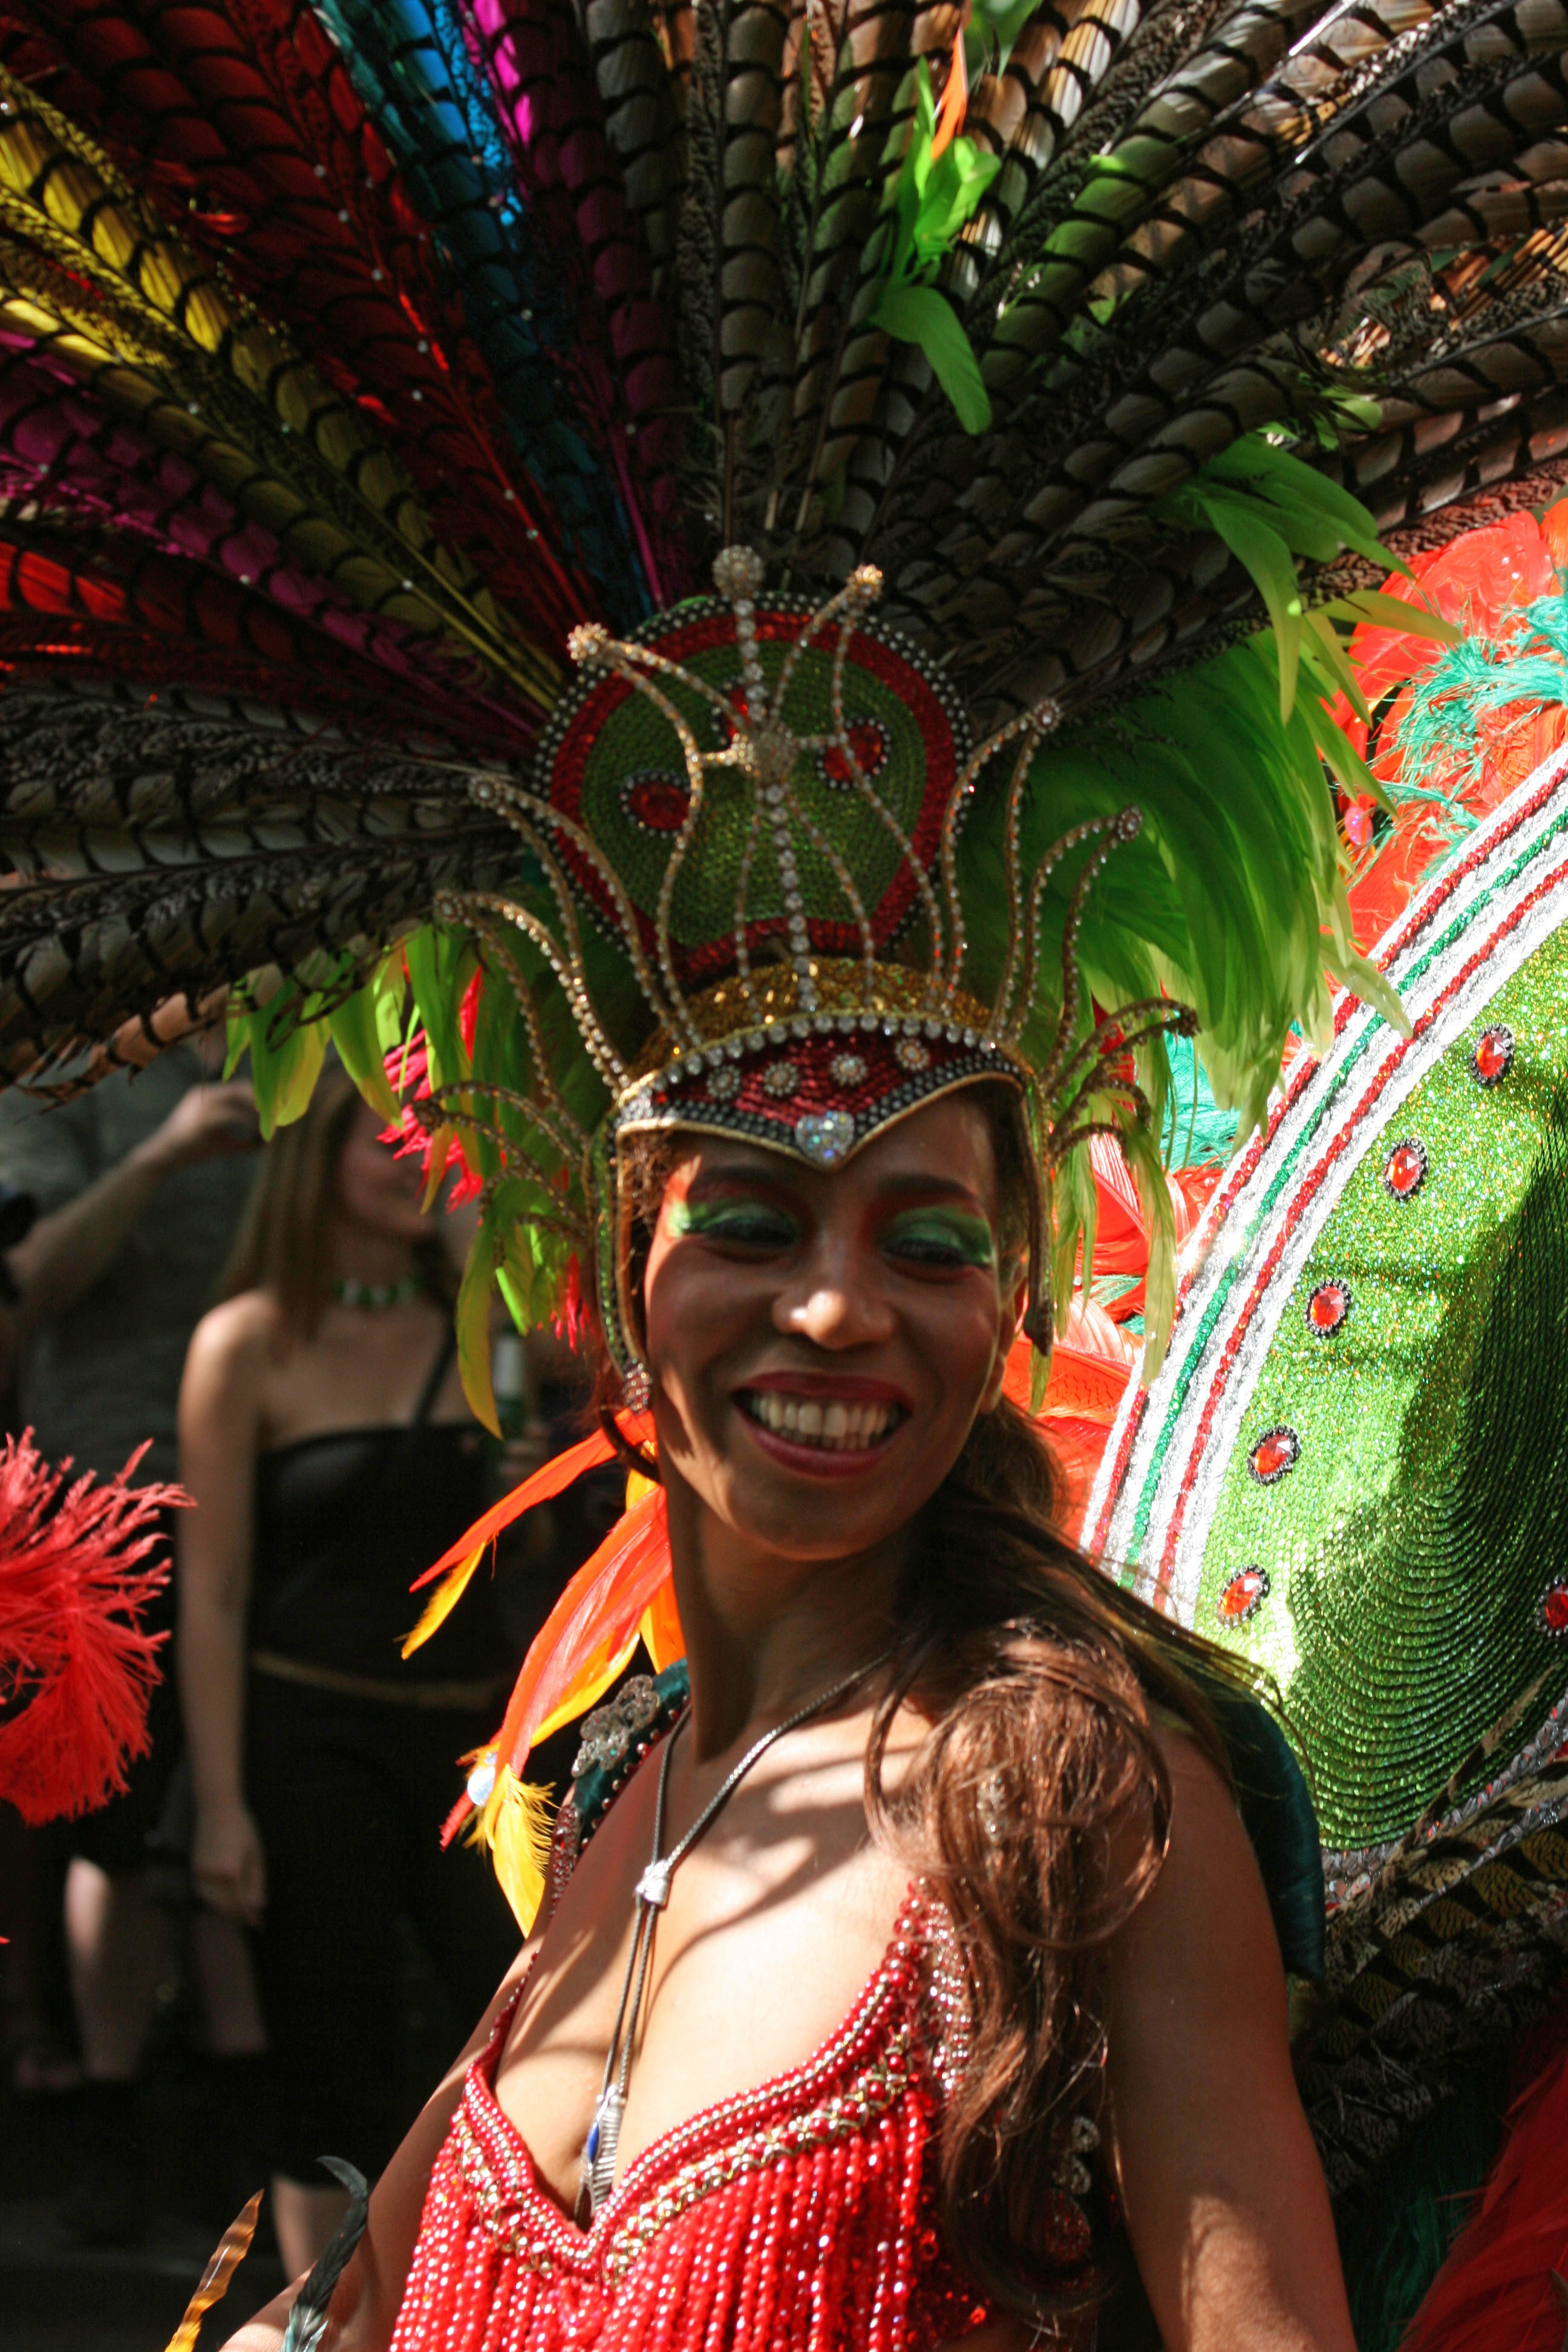 A lady in a feathered headdress dances at Karneval der Kulturen (Carnival of Cultures) in Berlin